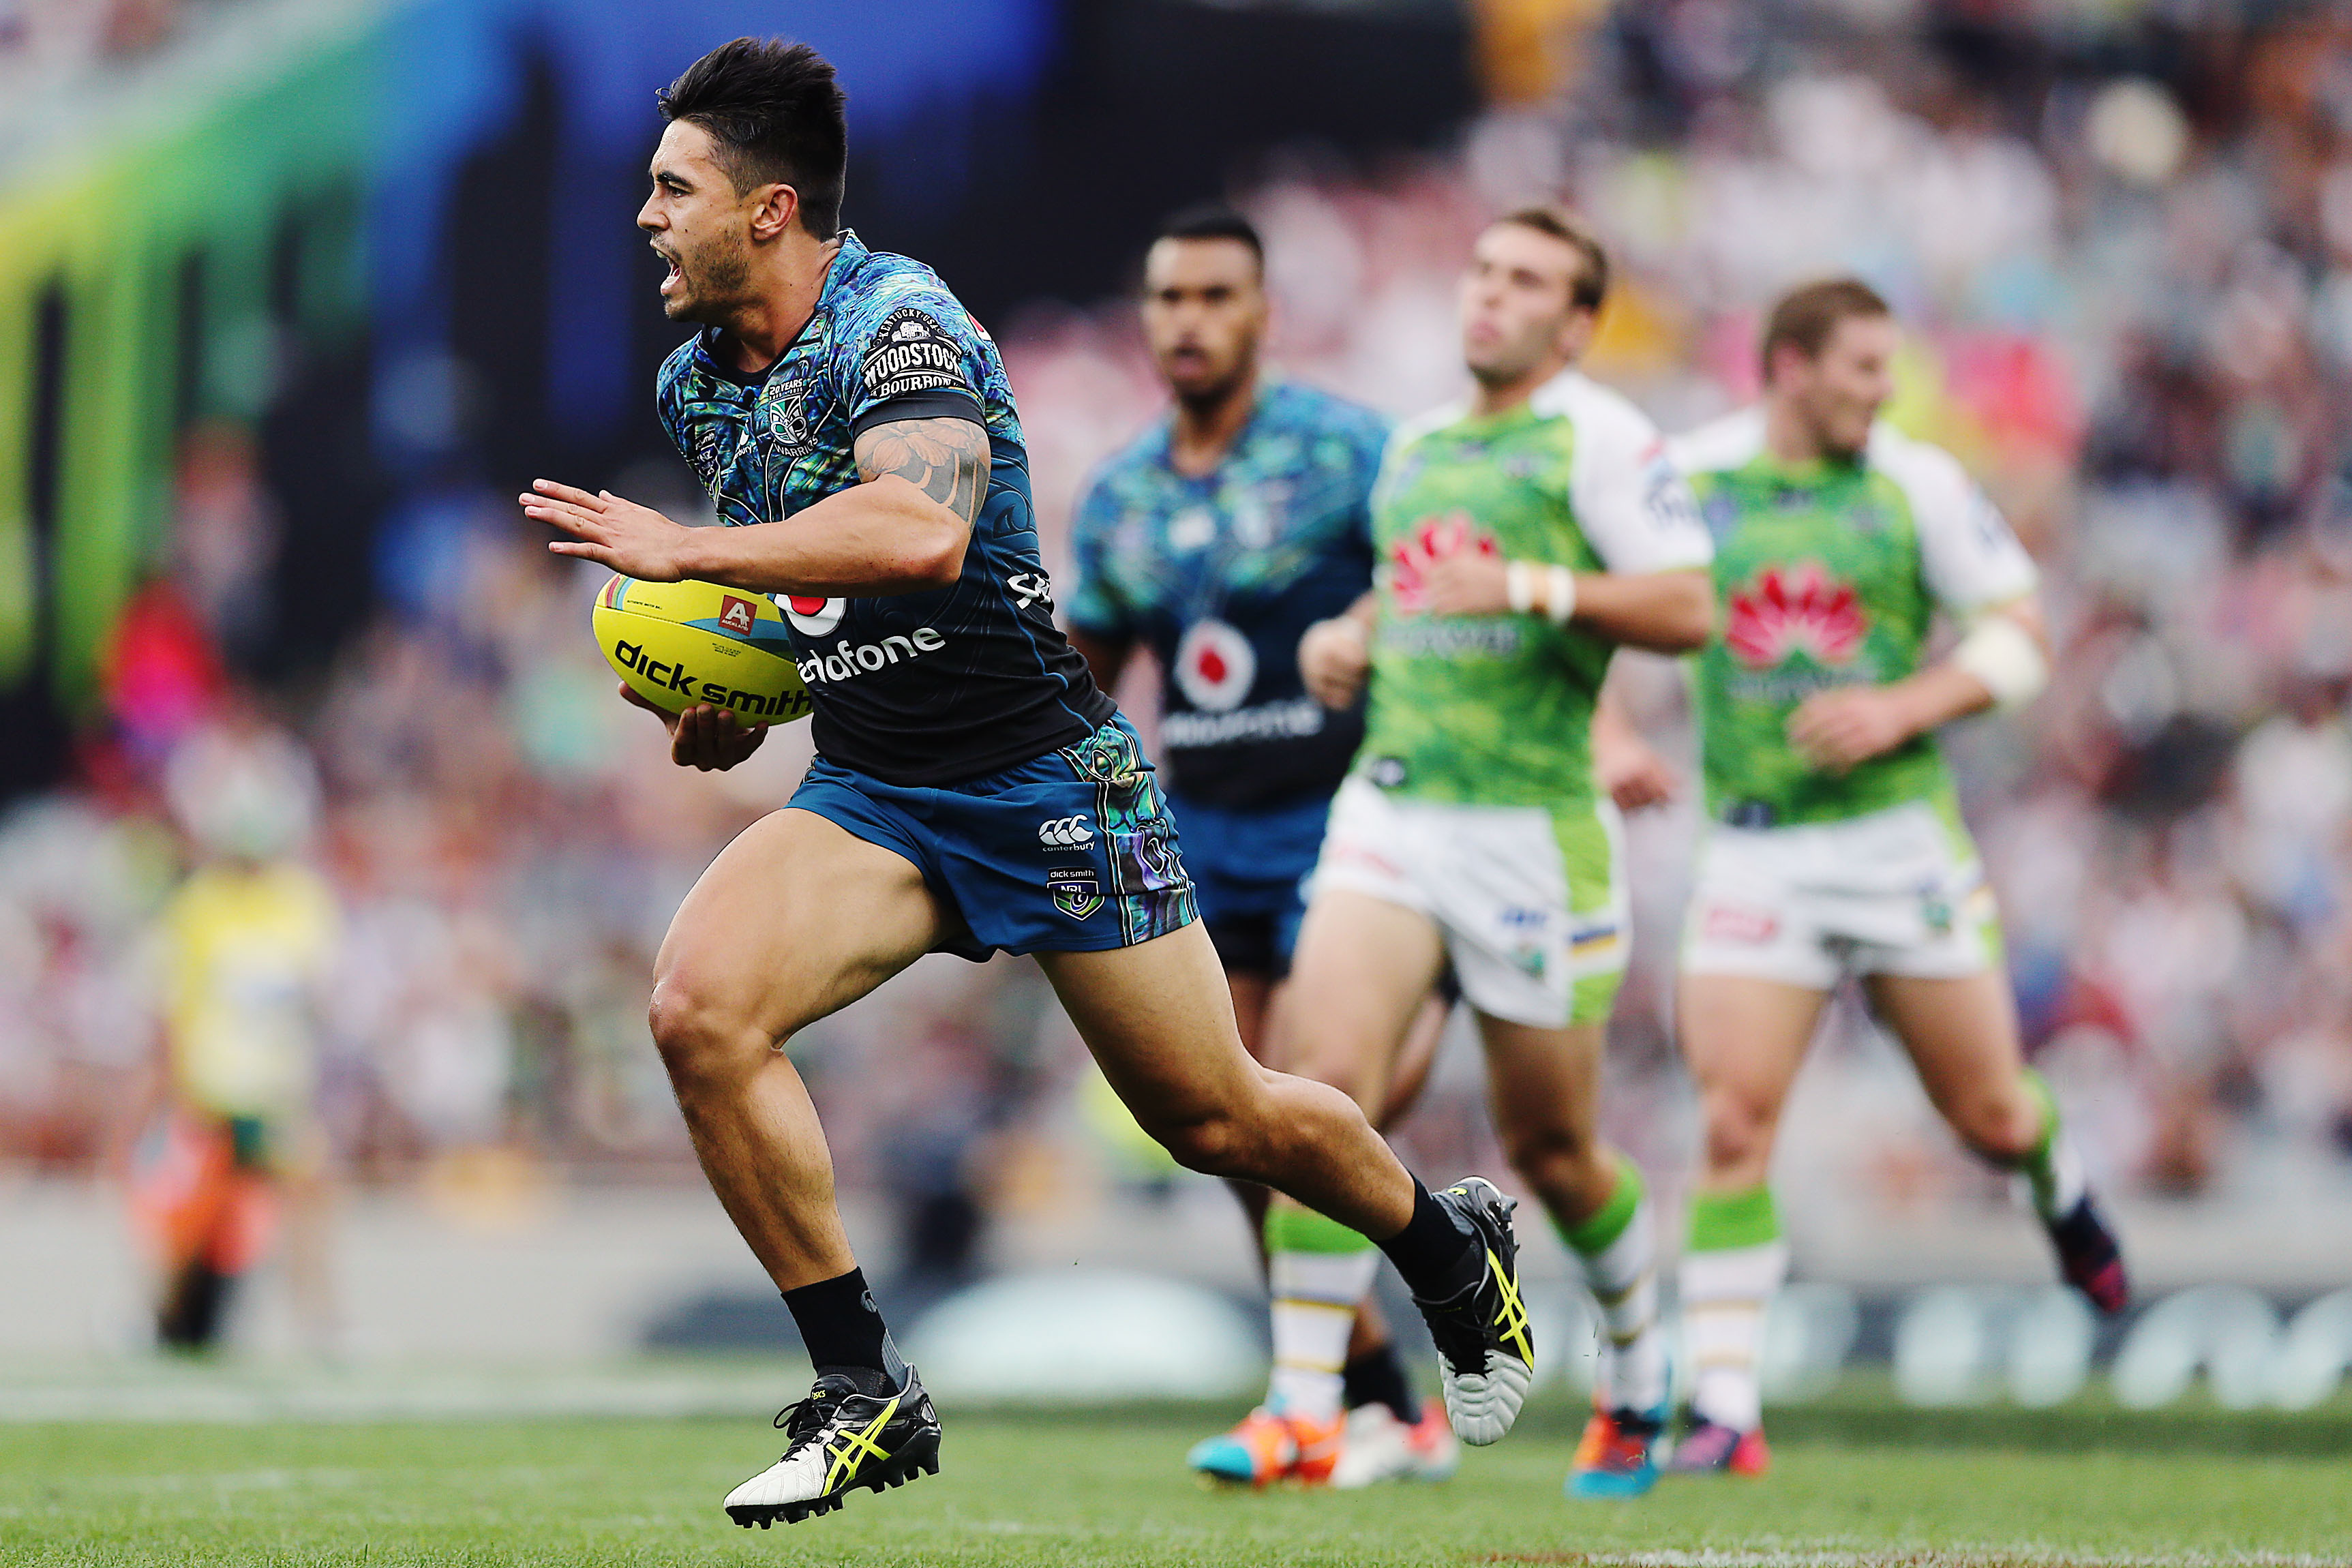 Watch the 2016 NRL Auckland Nines